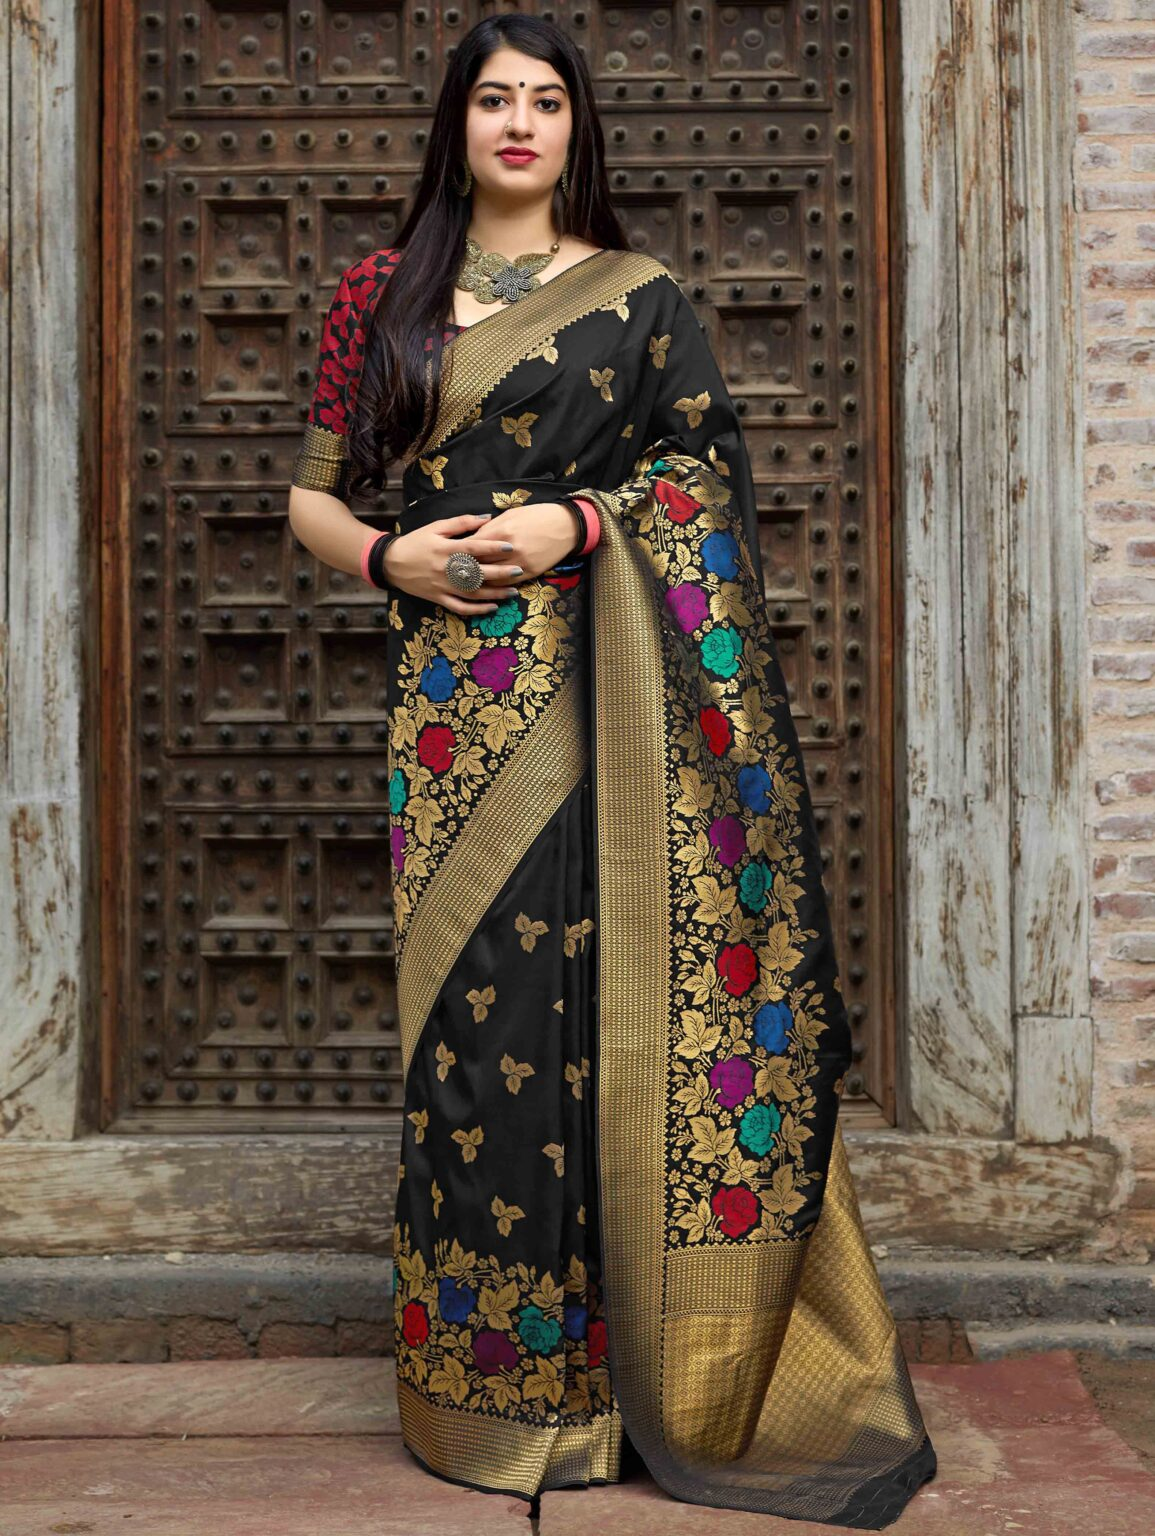 Black Banarasi Silk Traditional Floral Woven Saree with Dull Gold Zari Border and Pallu